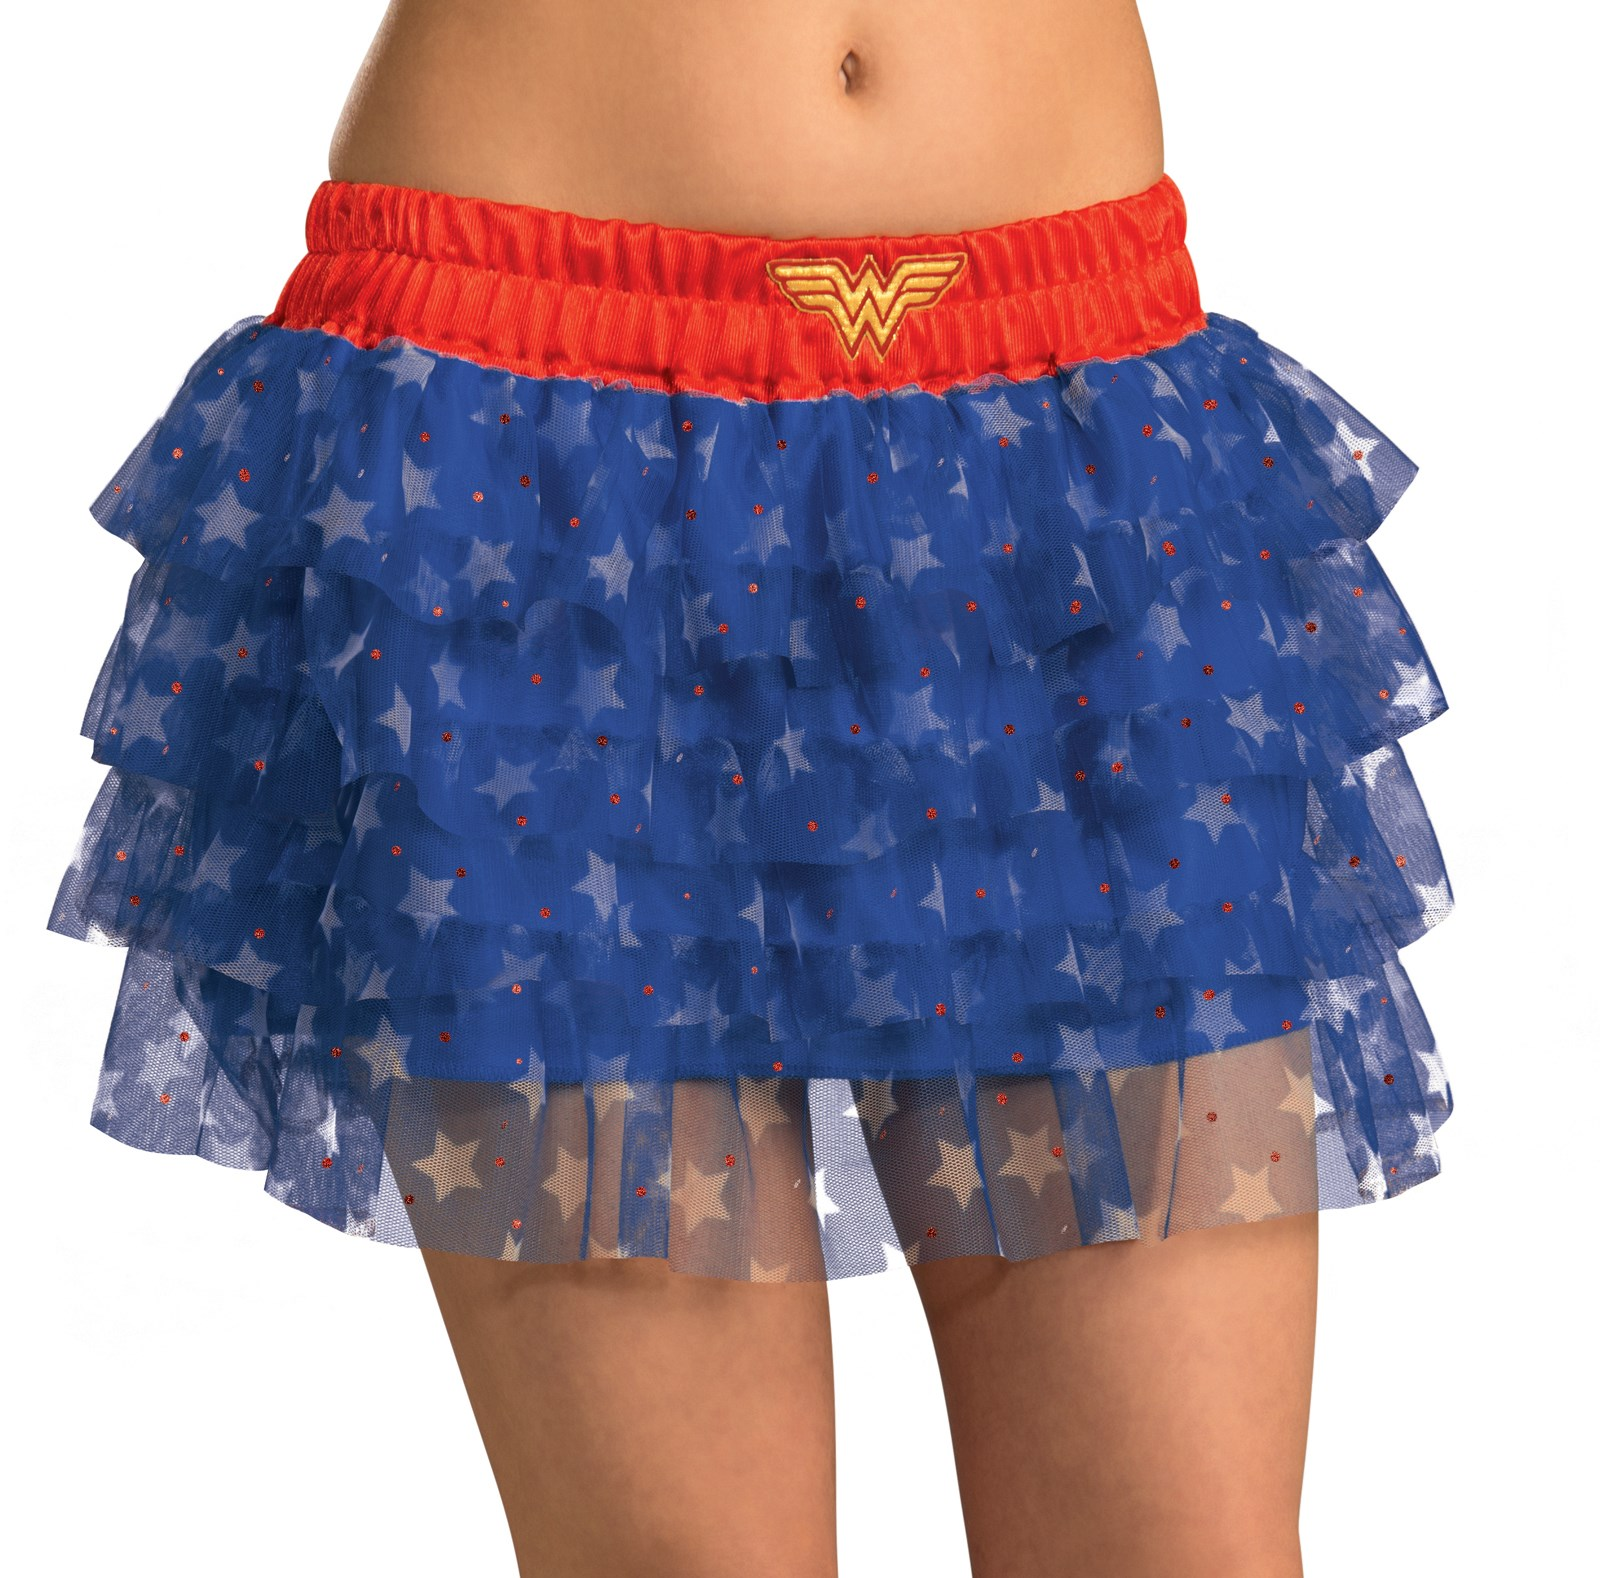 Adult Wonder Woman Tutu Skirt